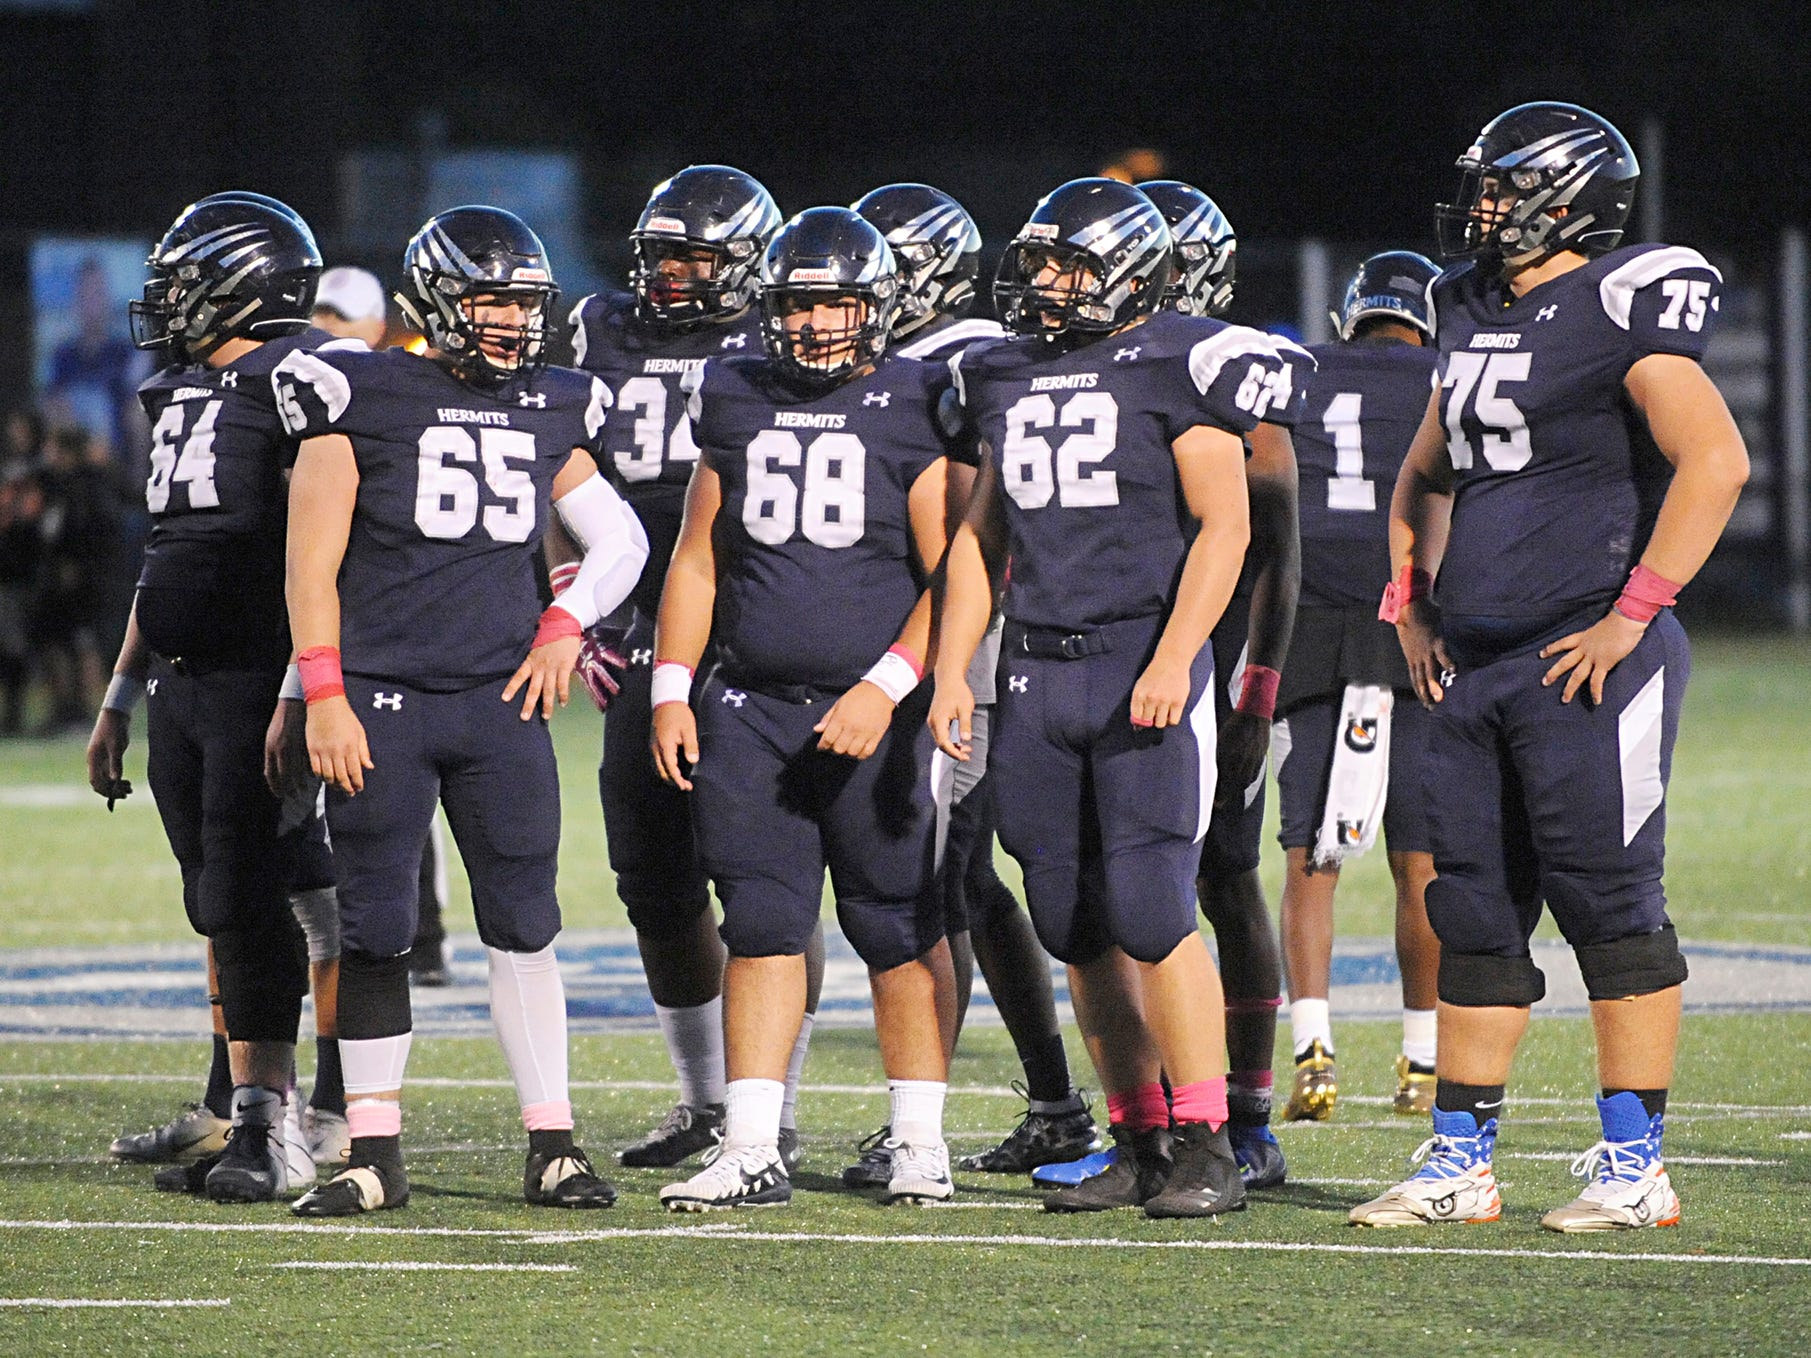 In a clash between two rivals, St. Augustine defeated visiting Holy Spirit in Richland. The Hermits won the game, 27-14 on Friday, October 12, 2018.